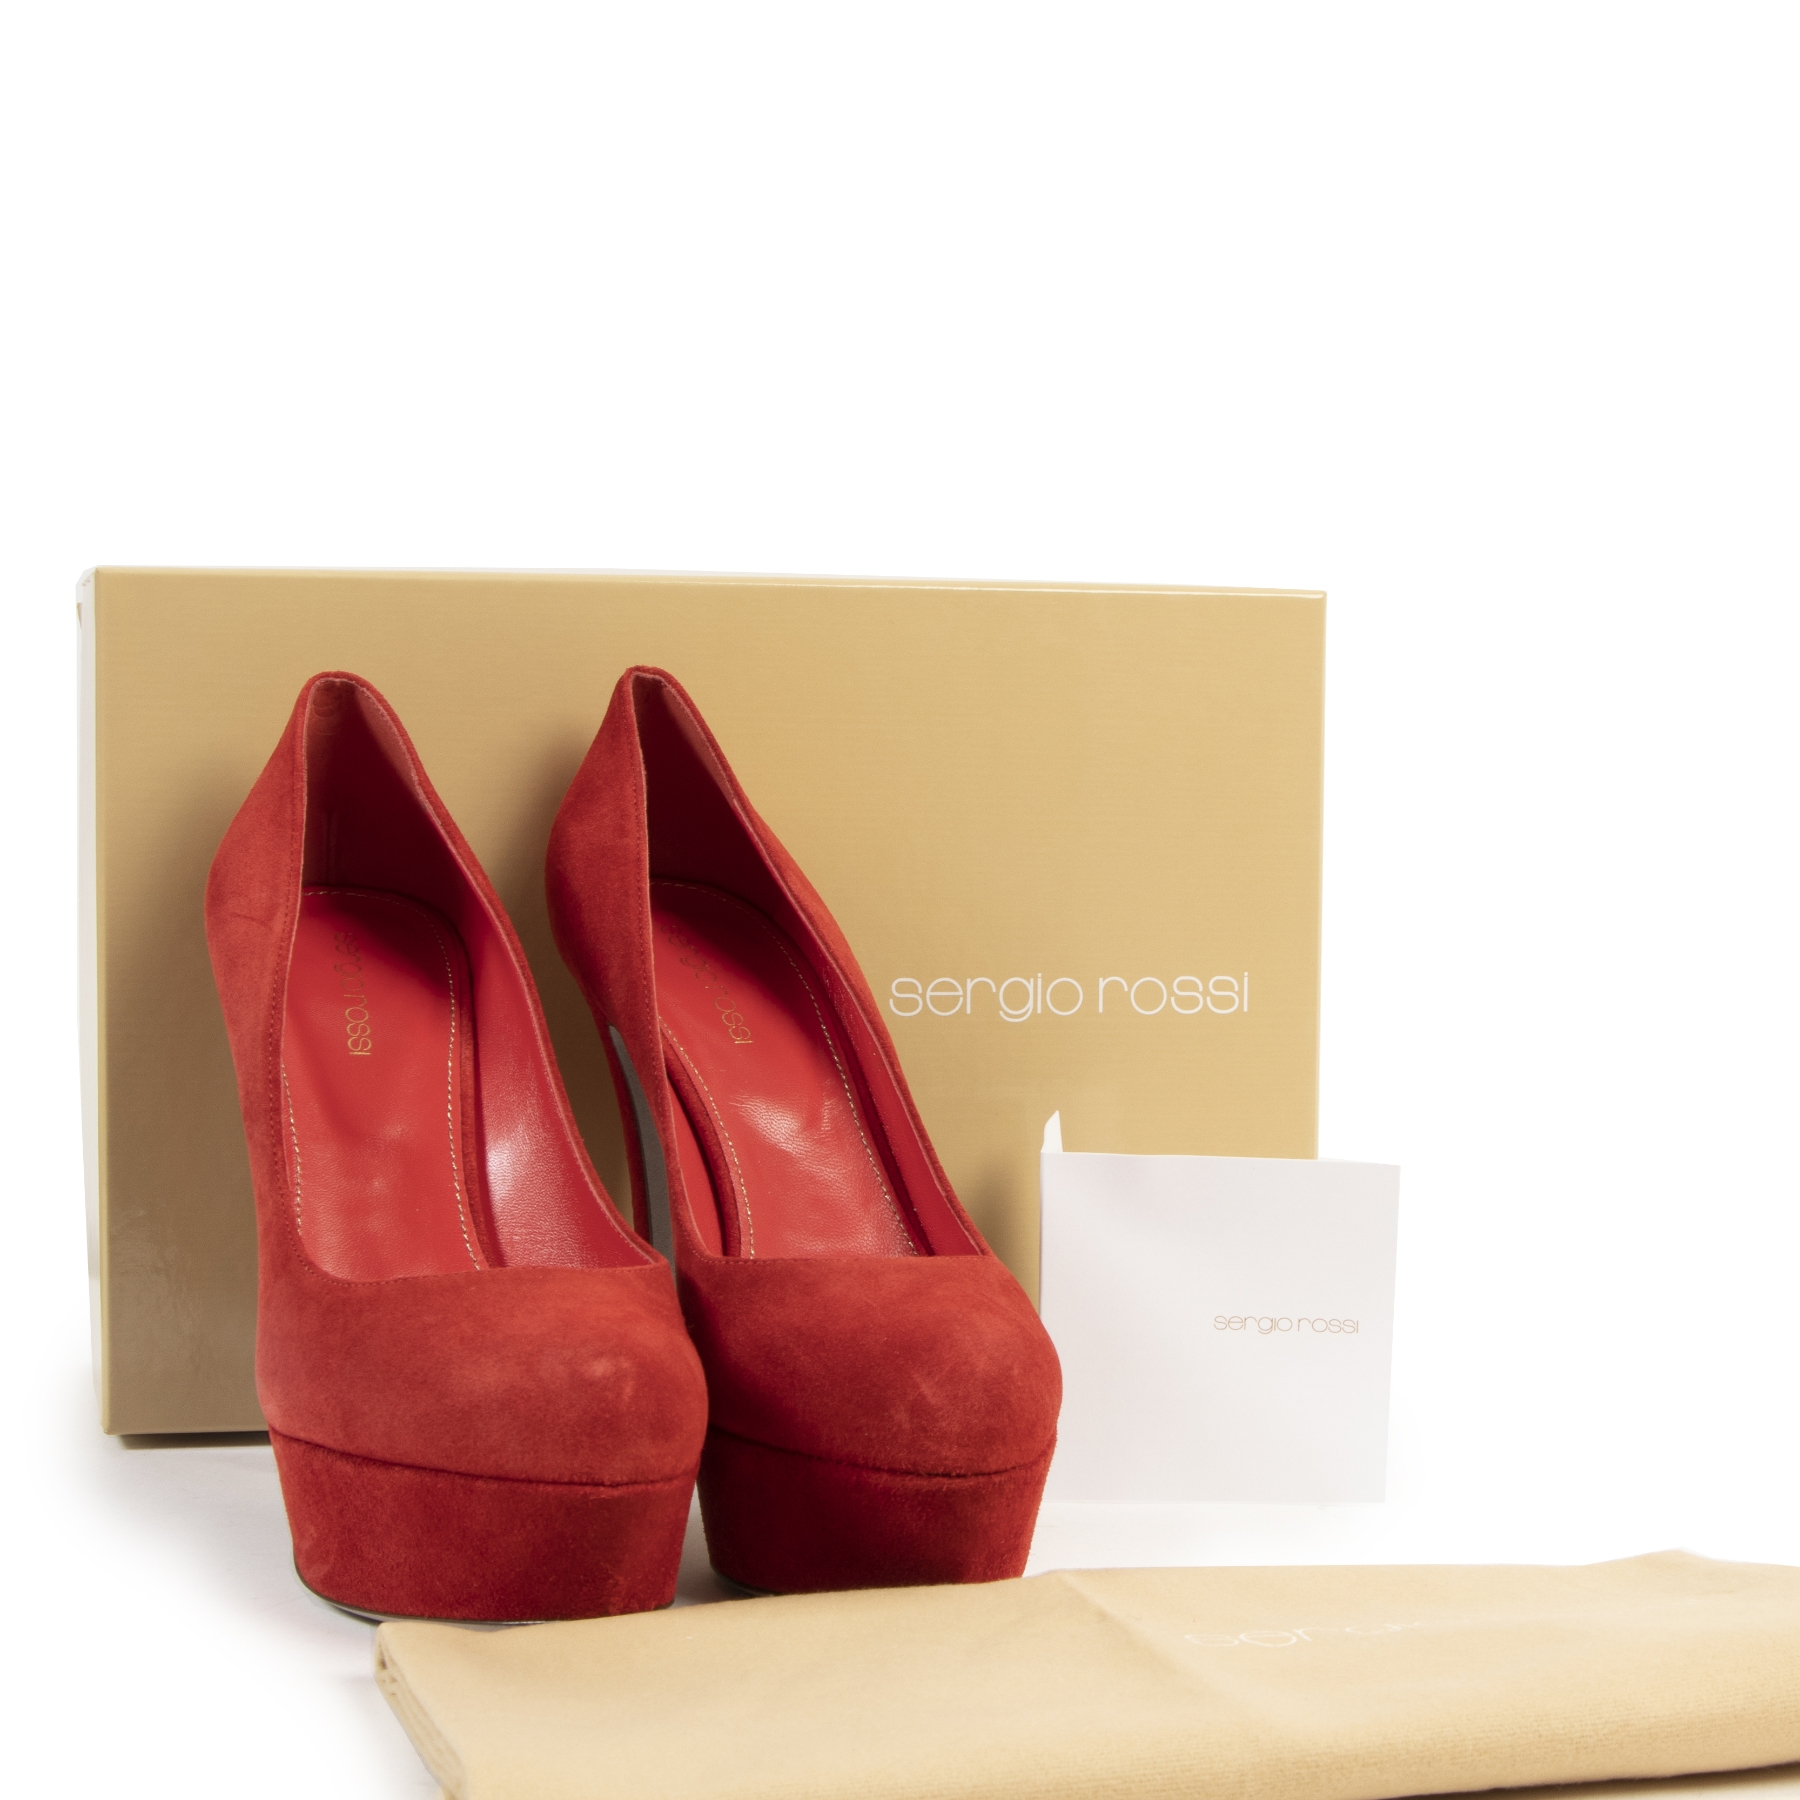 Sergio Rossi Red Suede Platform Pumps